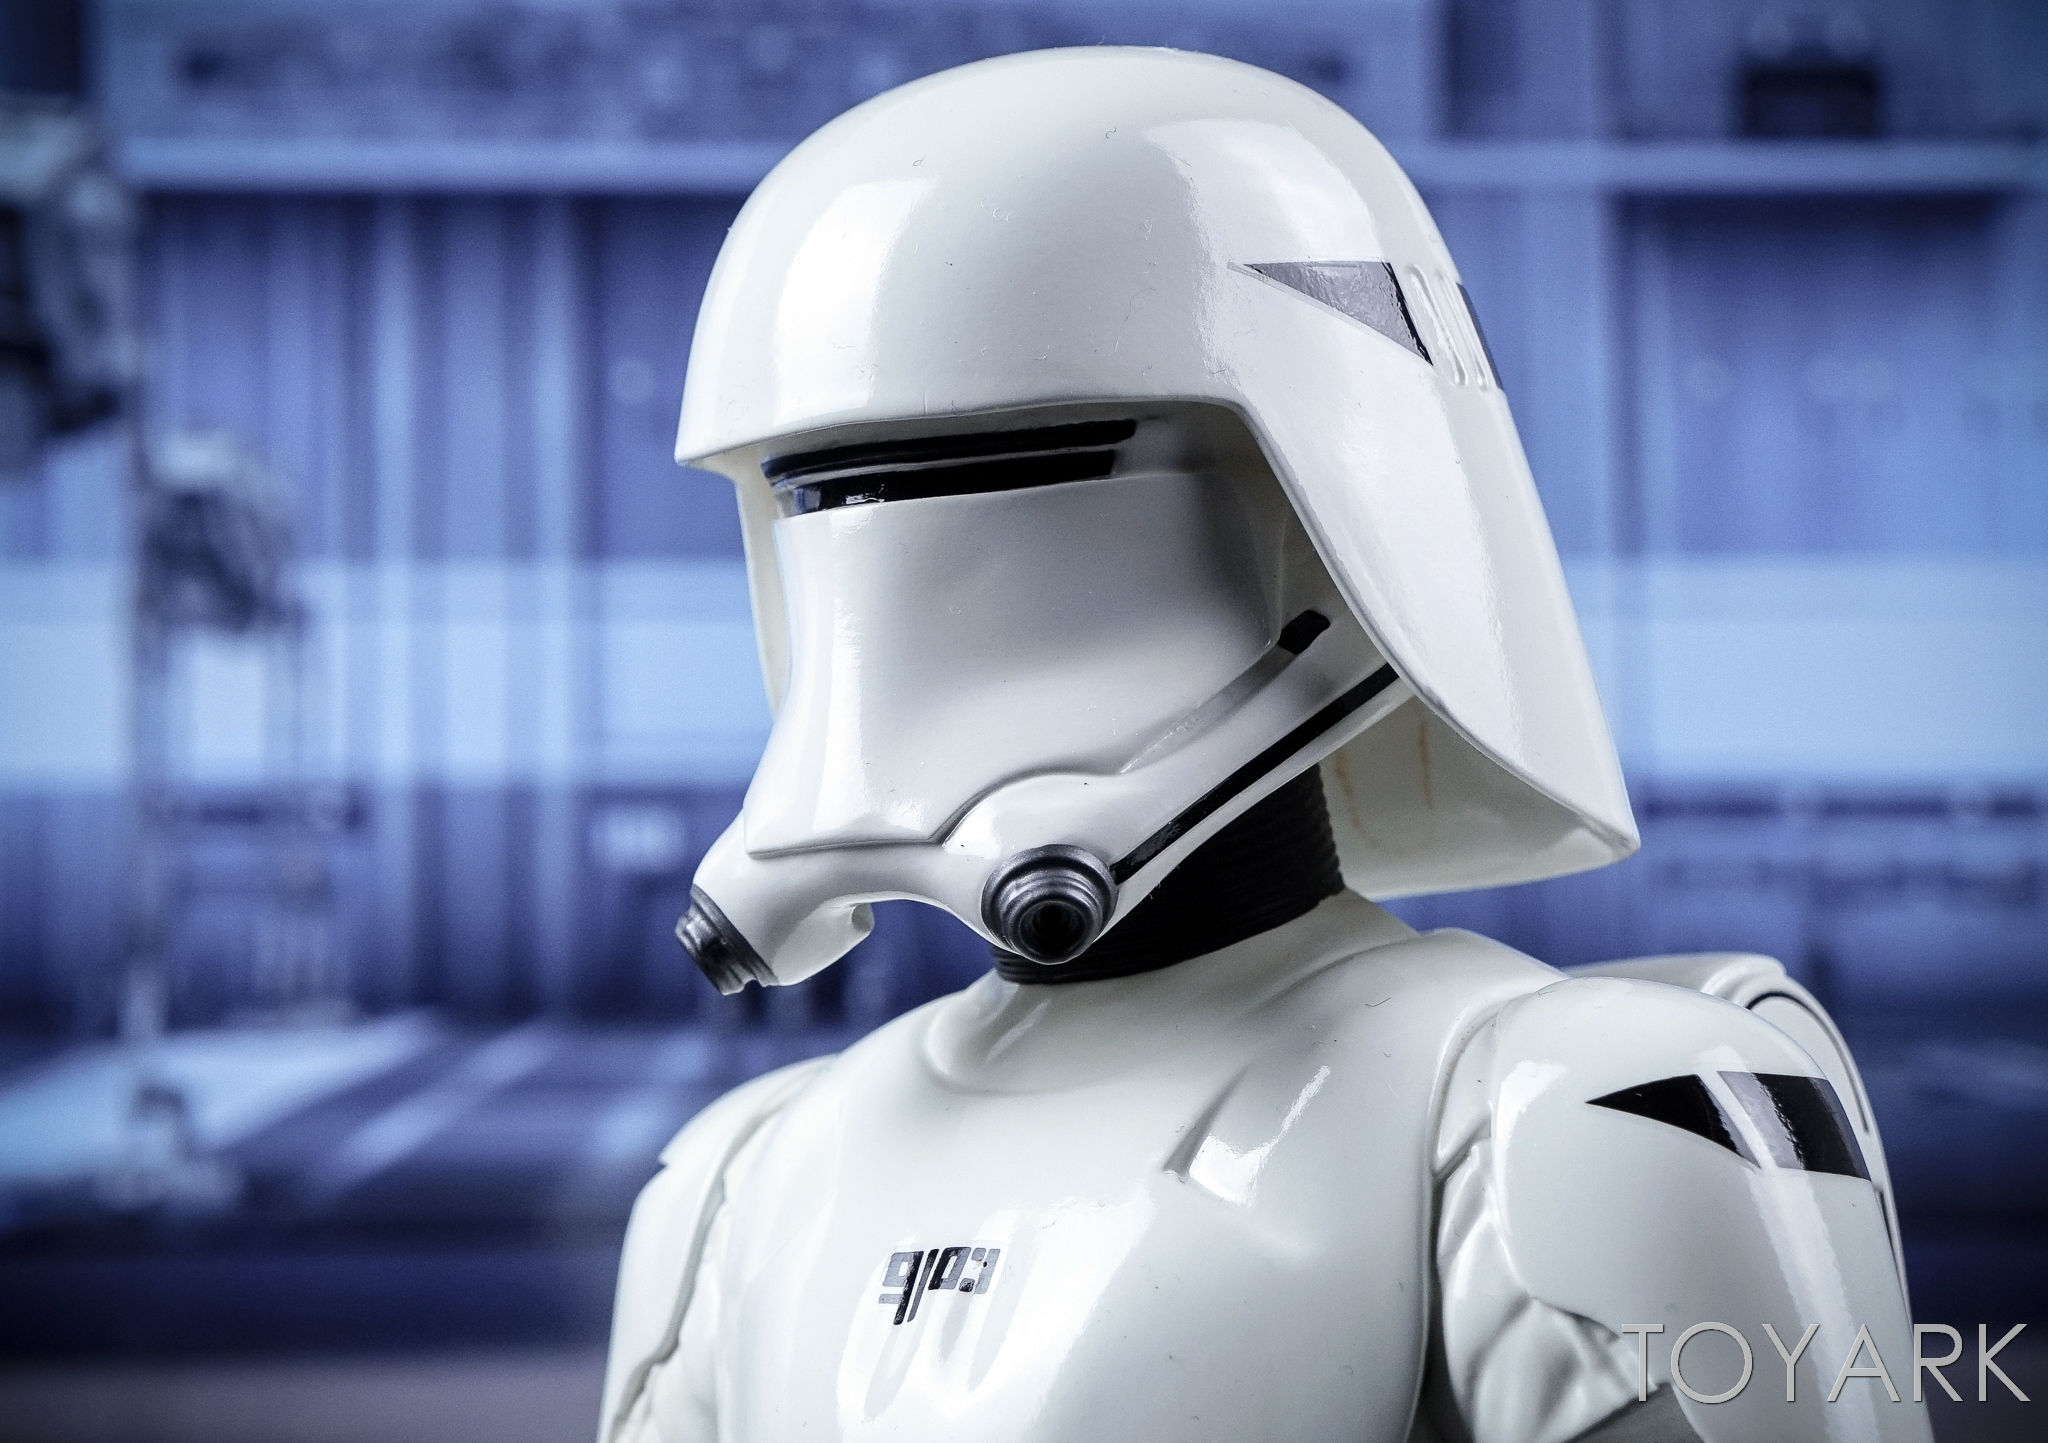 http://news.toyark.com/wp-content/uploads/sites/4/2016/12/Force-Awakens-Snowtrooper-Classic-Bust-031.jpg